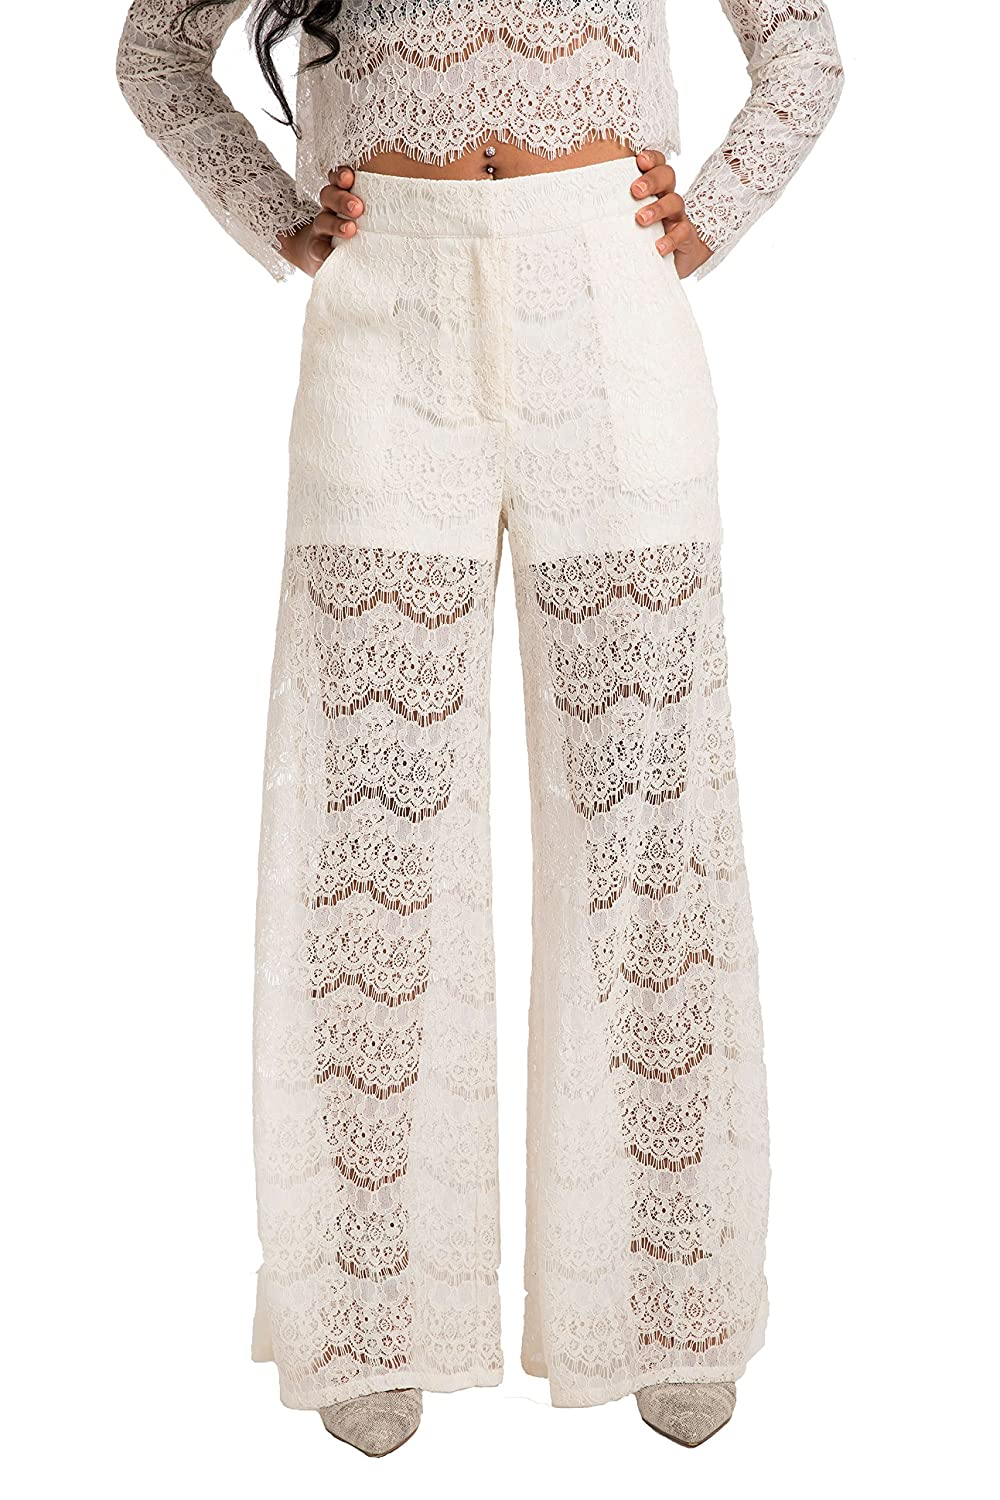 Standards & Practices Contemporary Women's Peekaboo Lace Palazzo Pant